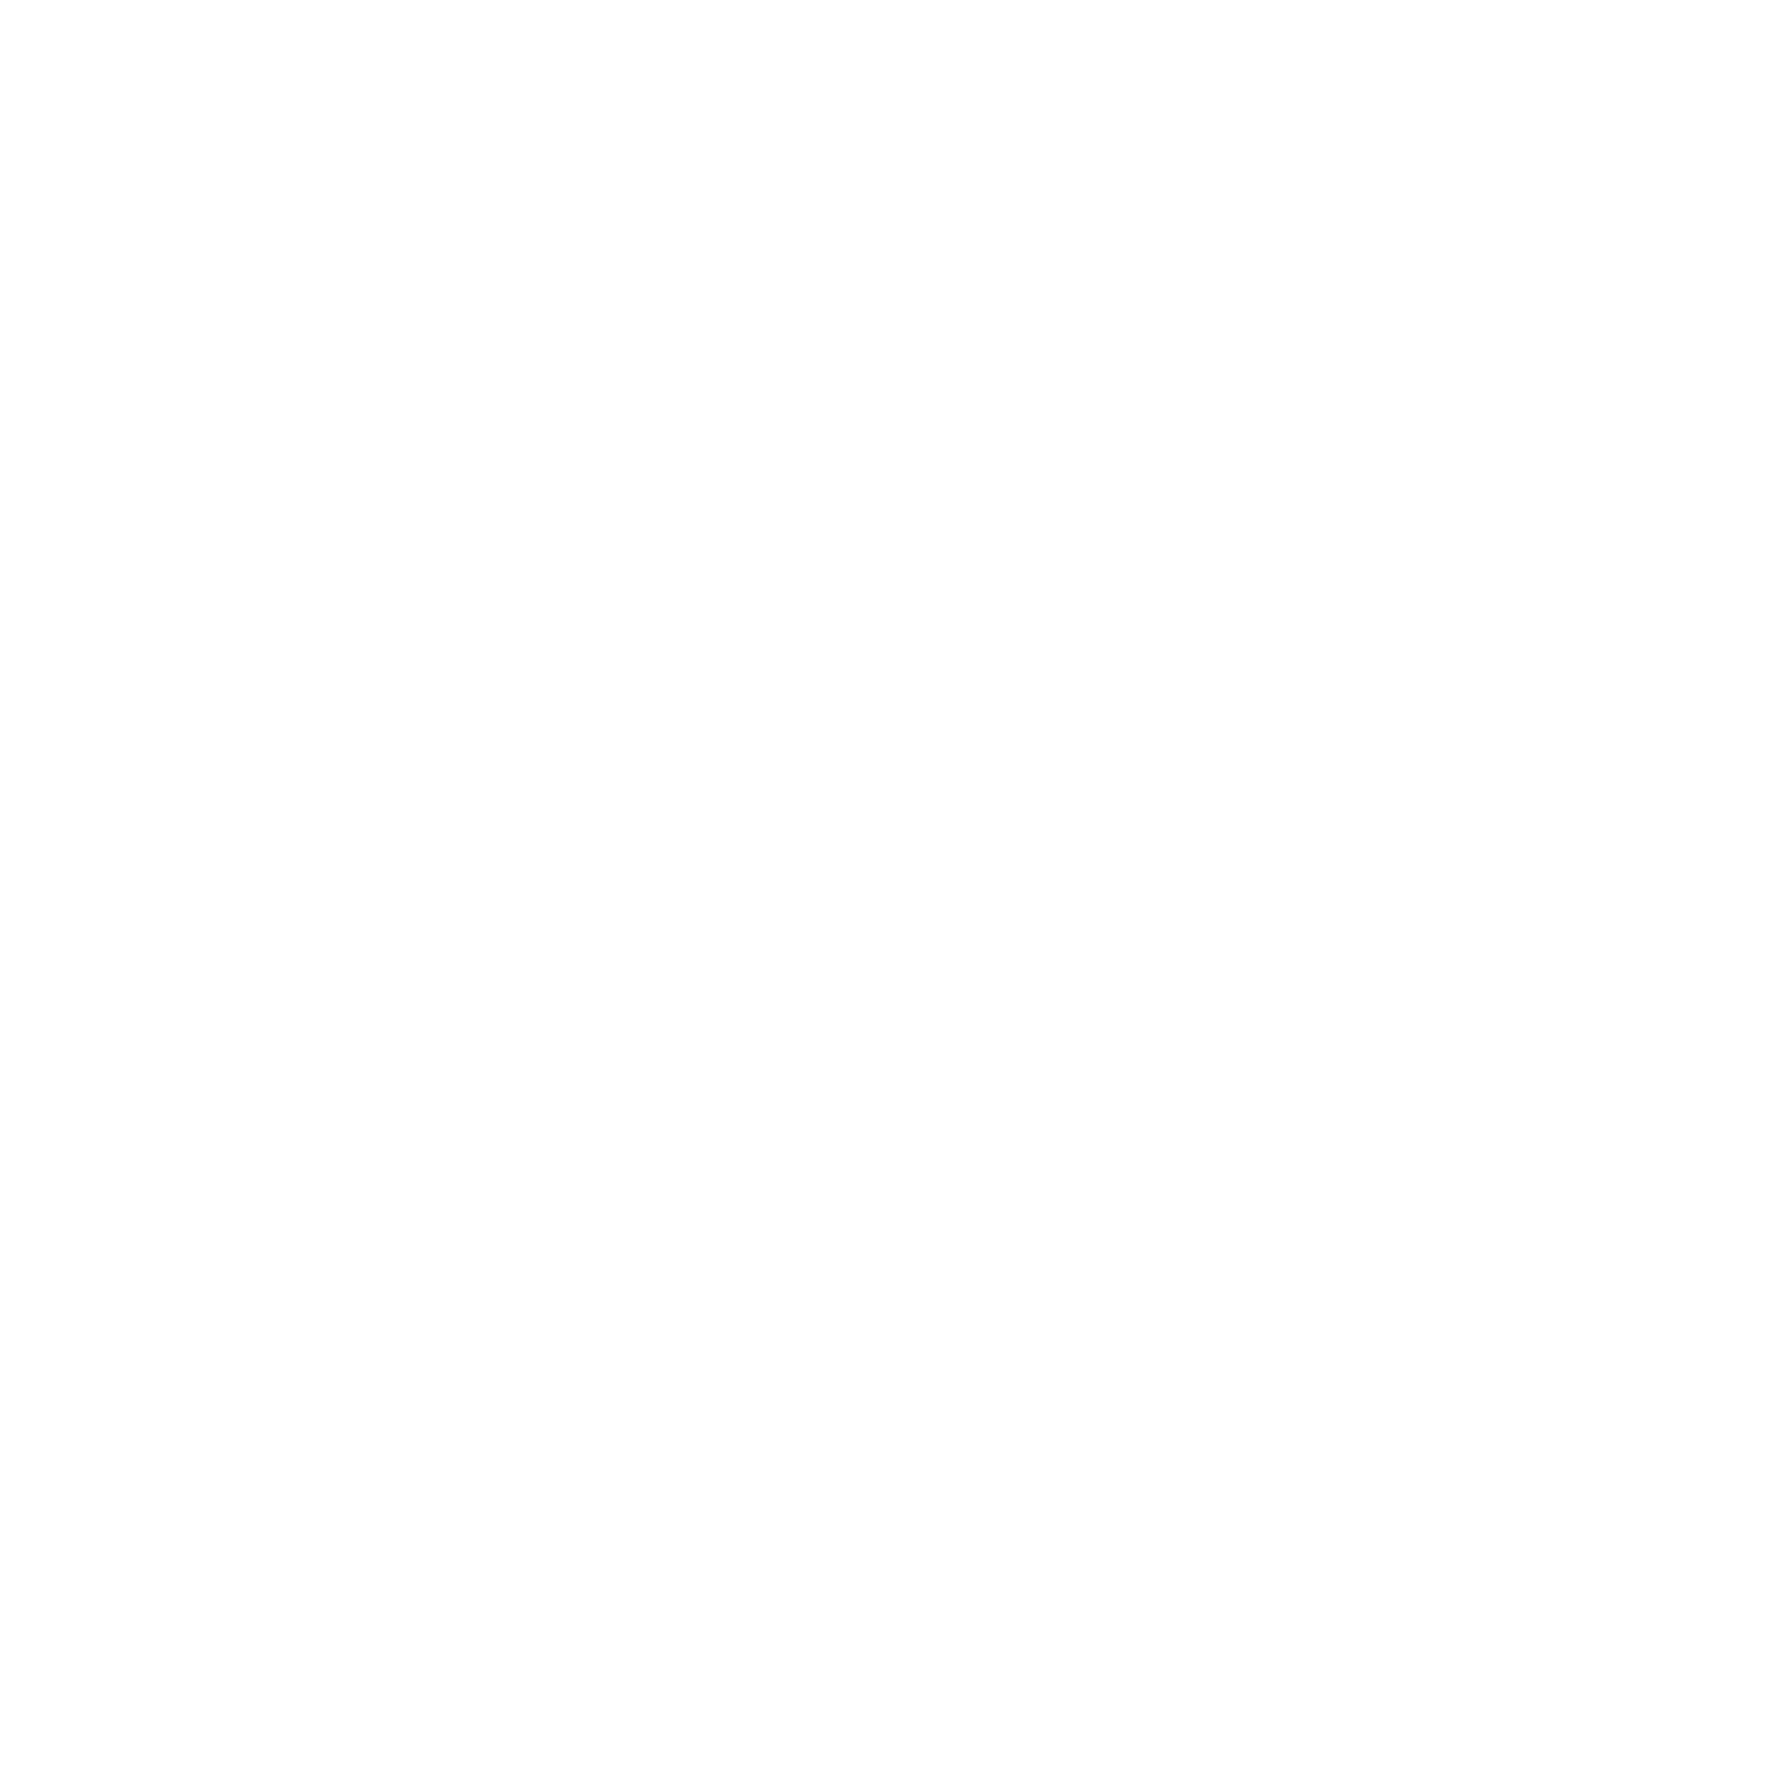 The Geeky Juans